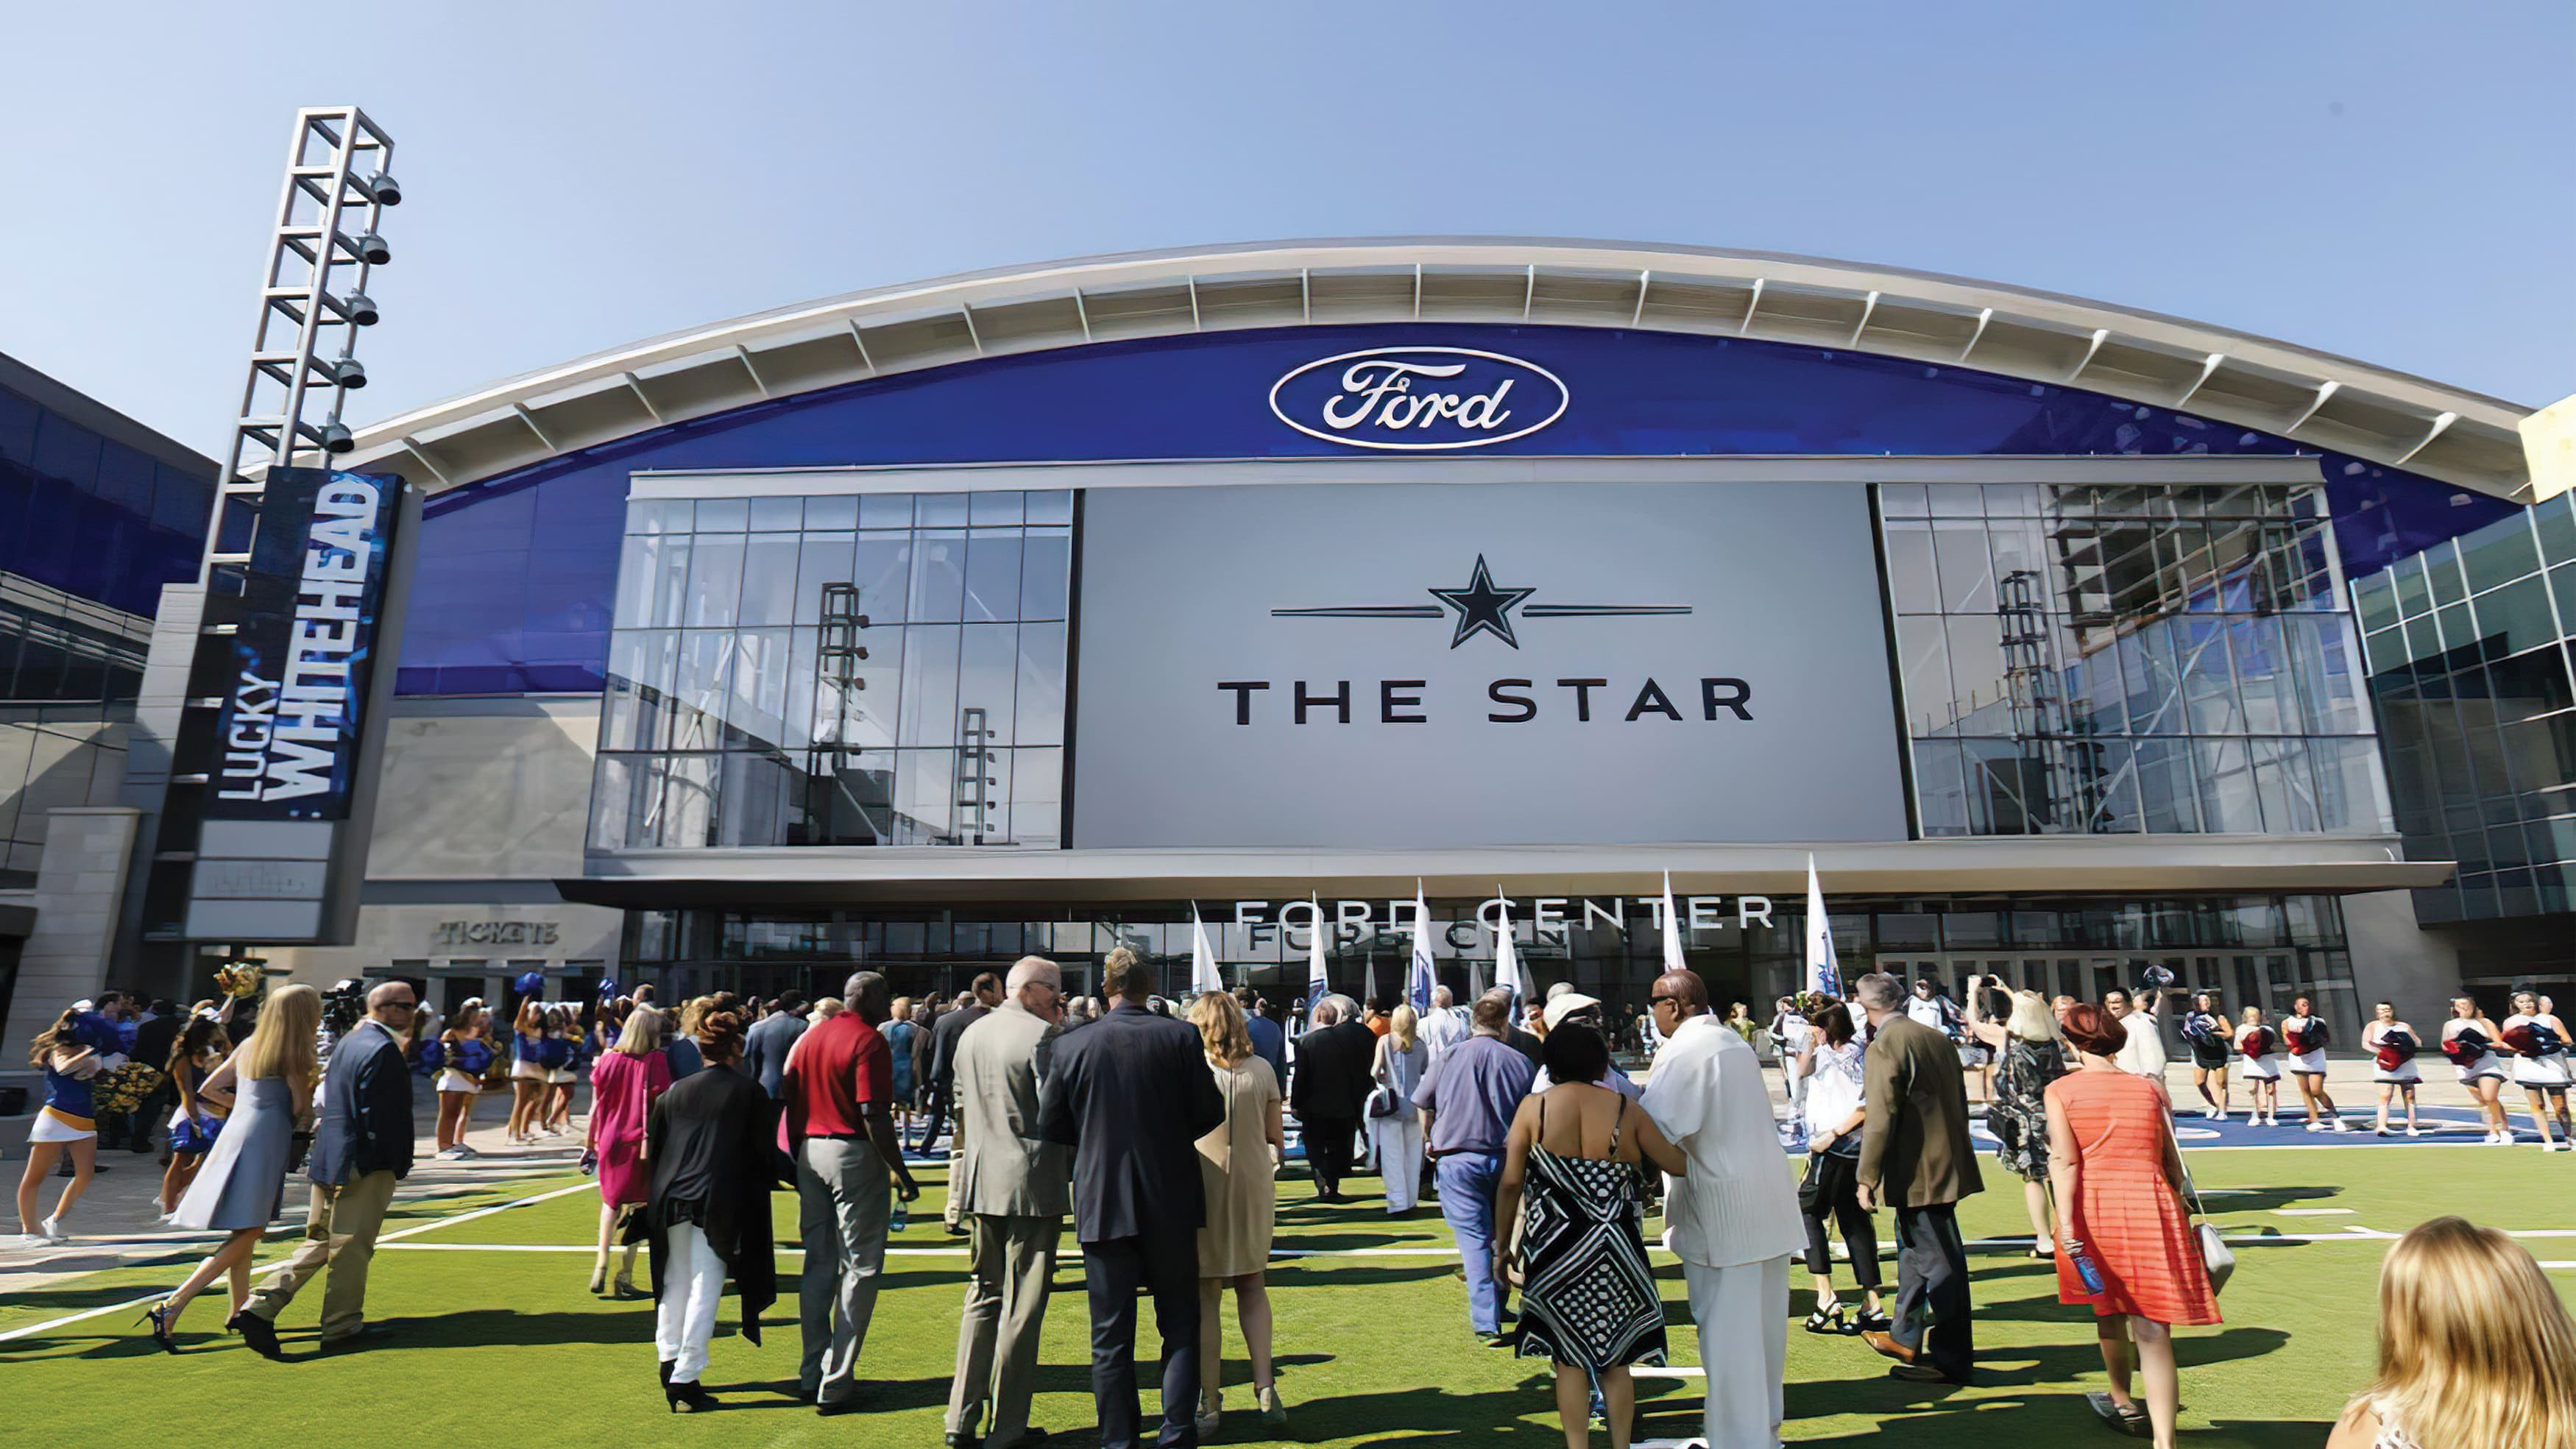 A crowd gathers for the grand opening of Dallas Cowboys' new corporate headquarters and training facility